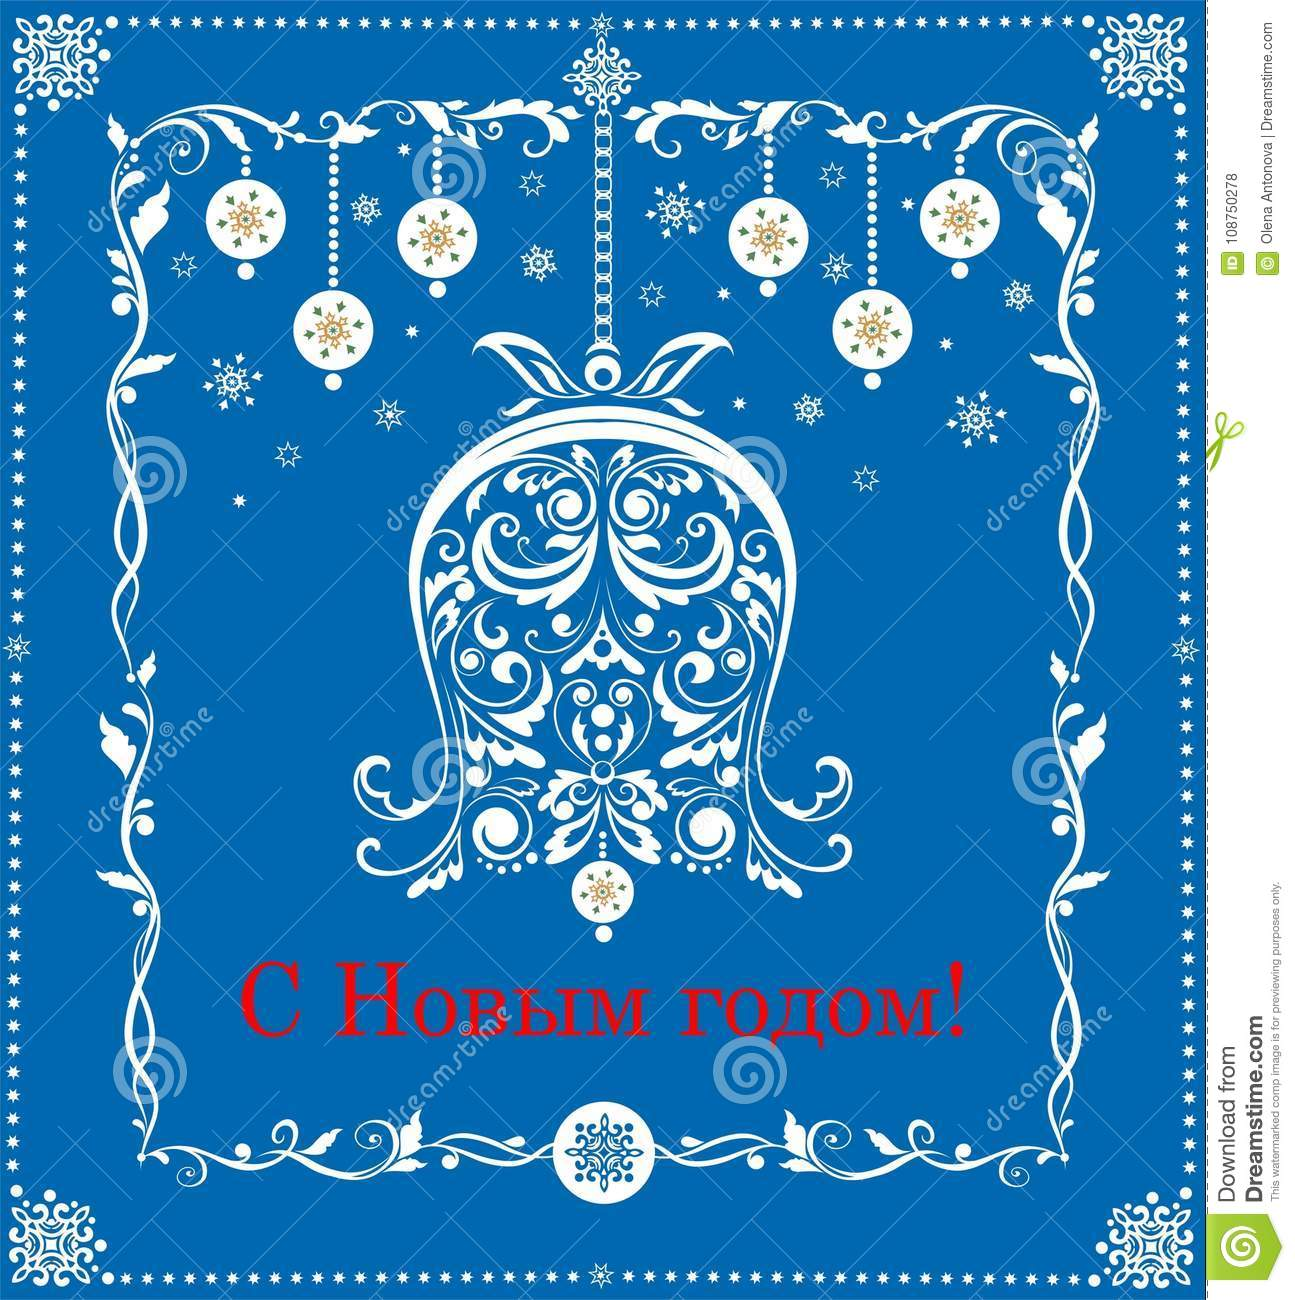 Retro Paper Blue Applique For Russian New Year Greetings With